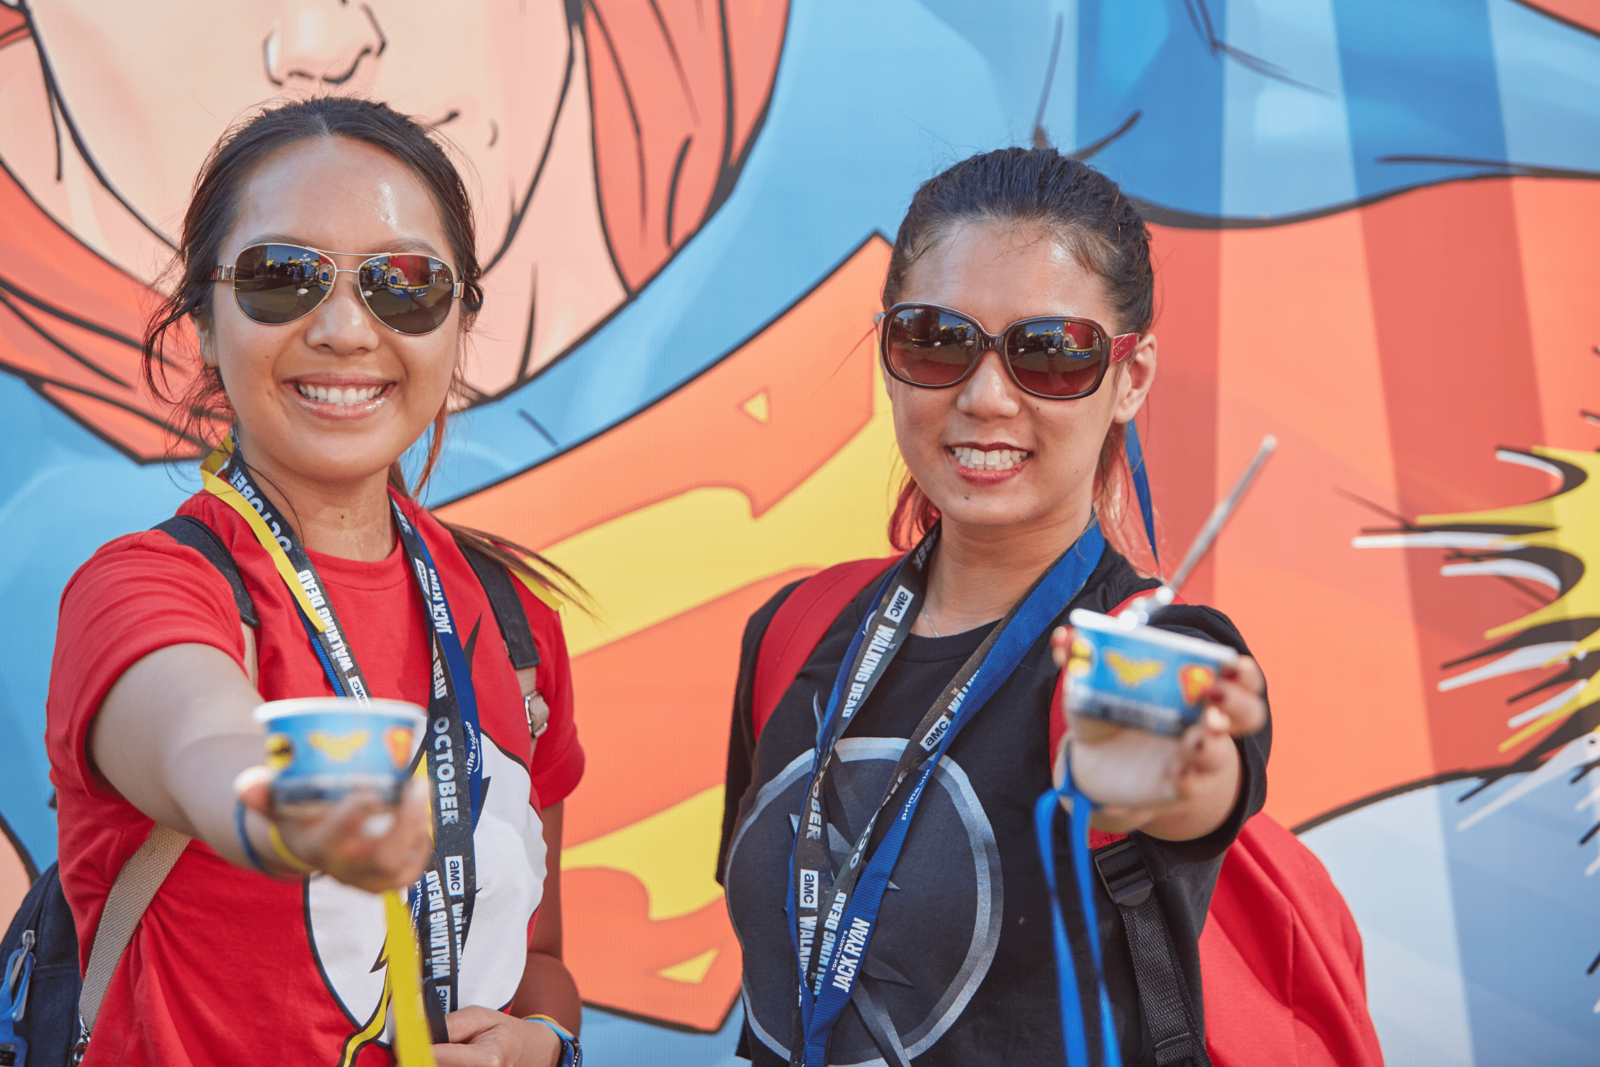 customers posing with superhero ice cream at convention booths